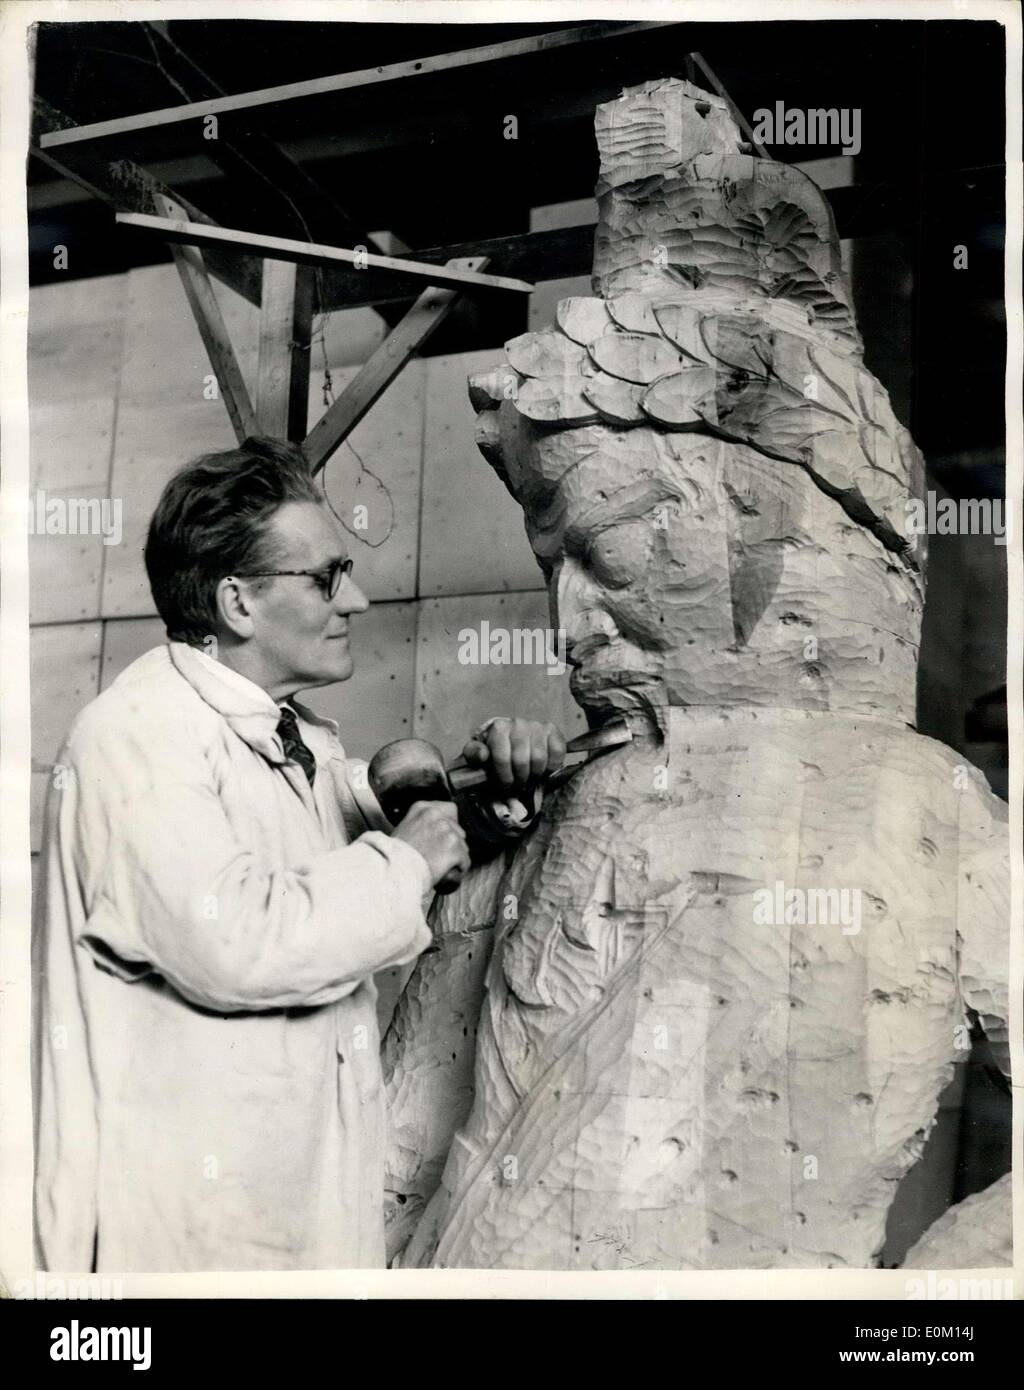 Feb. 28, 1953 - Gog and Magog are Born again: In a studio at Welwyn Garden City sculptor David Evans is working on two pieces of reborn London history - the new statue of those legendary giants, Gog and Magog. It is just over 12 years since their predecessors - who had stood in Guildhall since 1708 - perished in flames when fire bombs rained down. Working from clay models, the culptor has fashioned the two statues in limewood, each 9ft.3 ins.high, and weighing about 15 owt. The statues are expected to be in their places in time for the Queen's coronation visit to the City - Stock Image